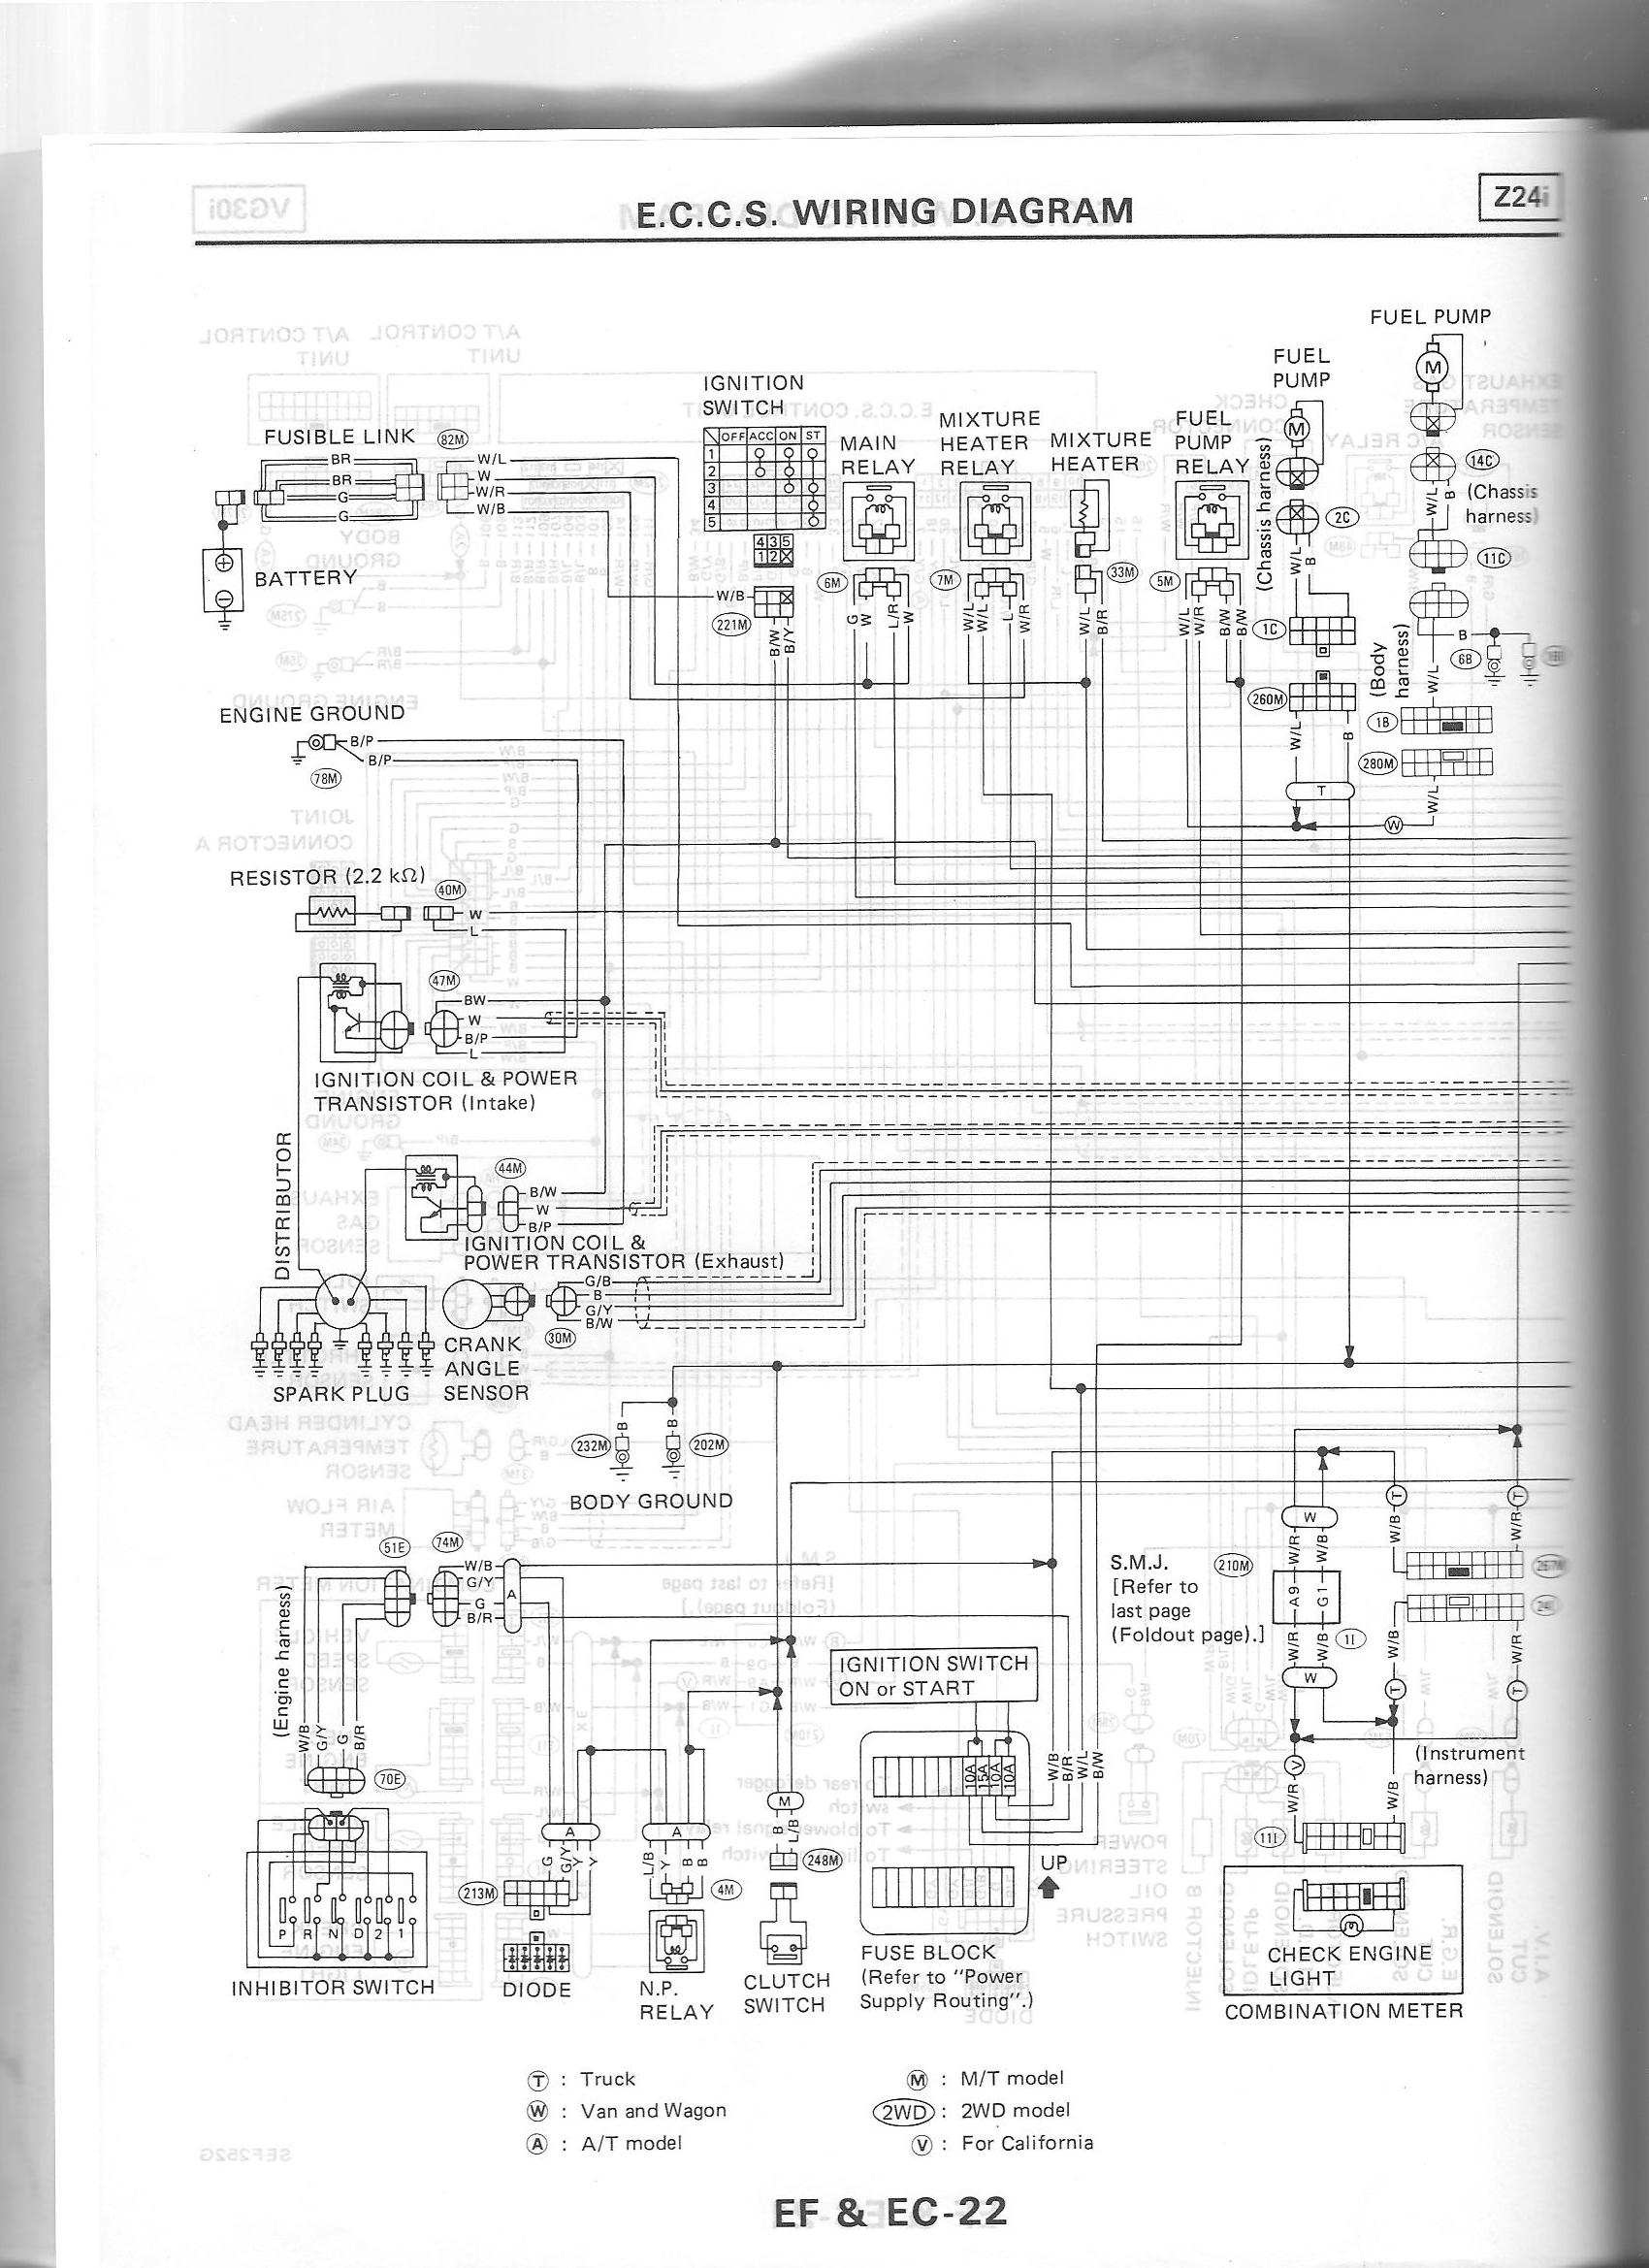 Pleasing Ka24De Ecu Pinout Diagram Wiring Diagram Photos For Help Your Wiring Cloud Counpengheilarigresichrocarnosporgarnagrebsunhorelemohammedshrineorg